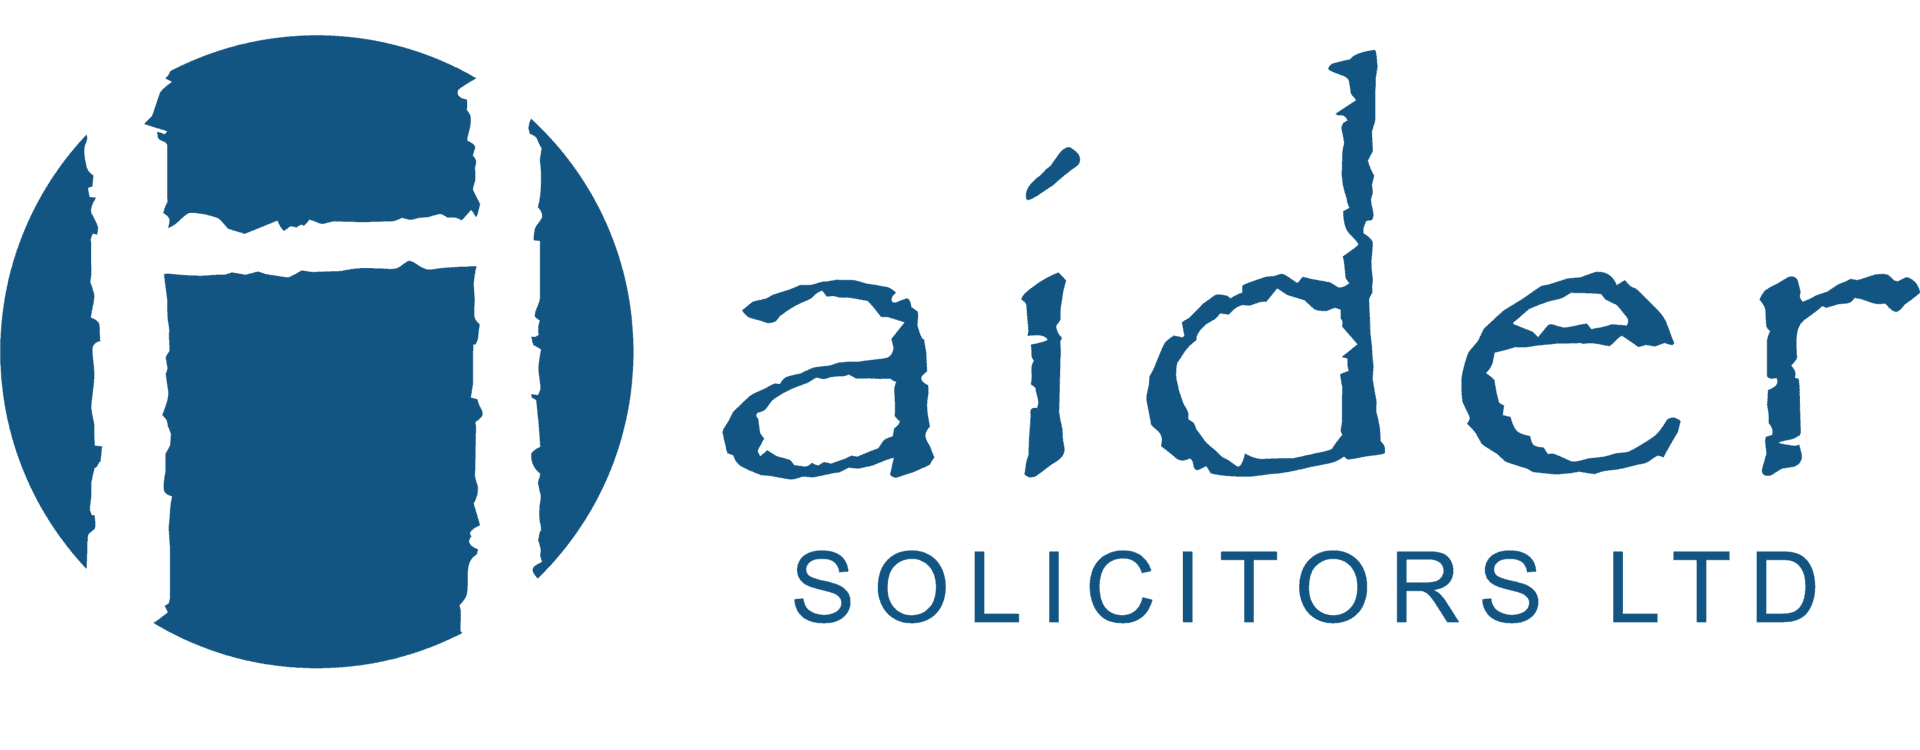 Haider Solicitors logo